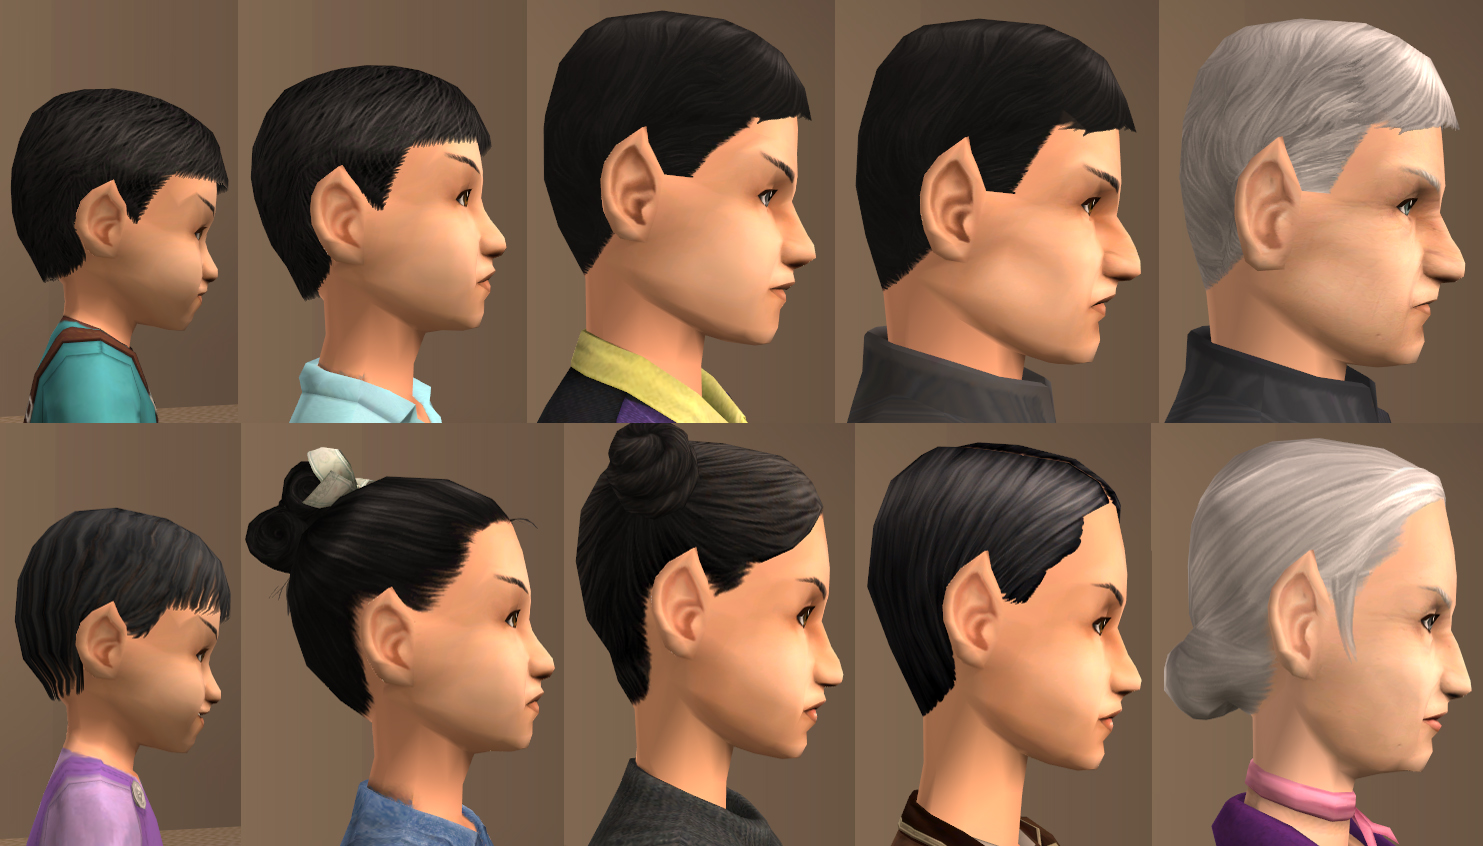 download software sims 2 elf face template criseinnovation